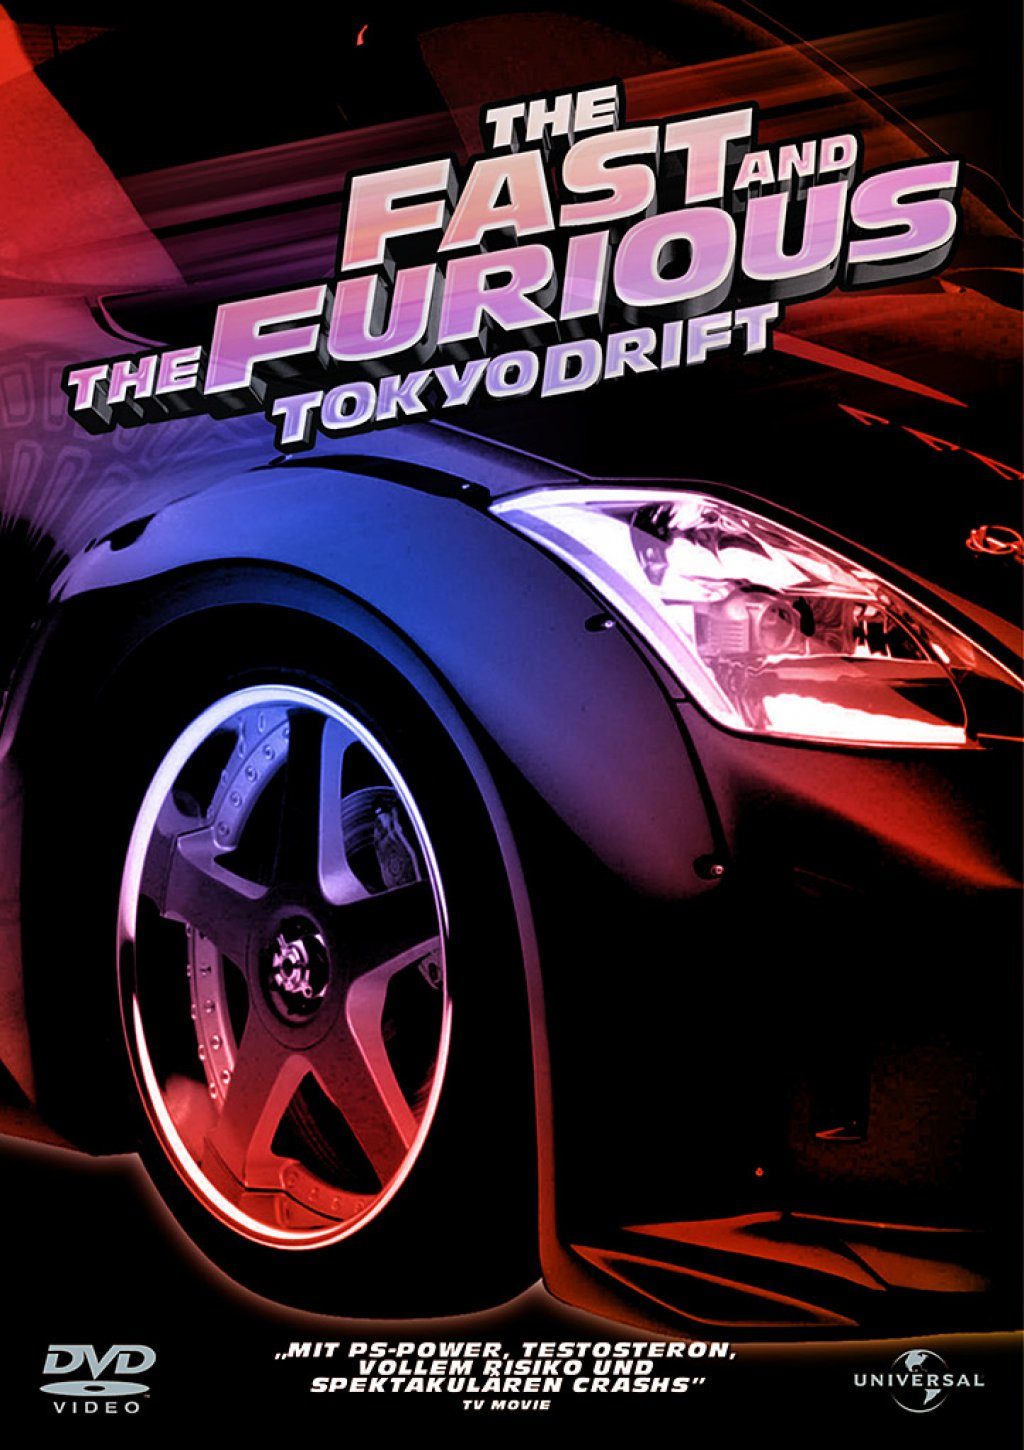 The Fast and the Furious: Tokyo Drift - 2 DVD Set (DVD)